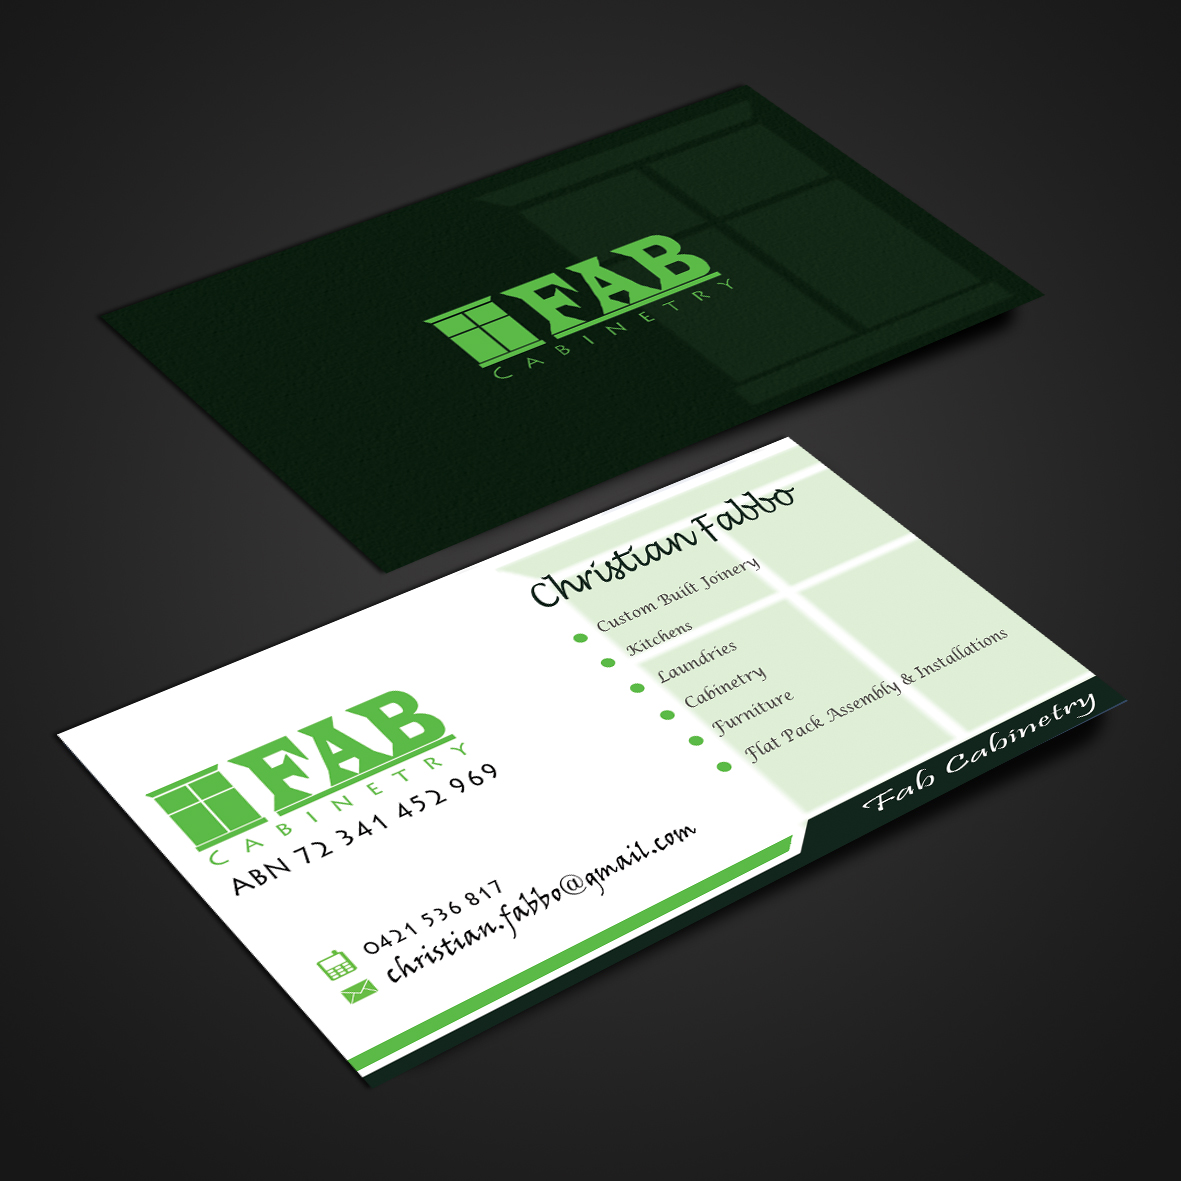 Elegant, Playful, Small Business Business Card Design for a Company ...